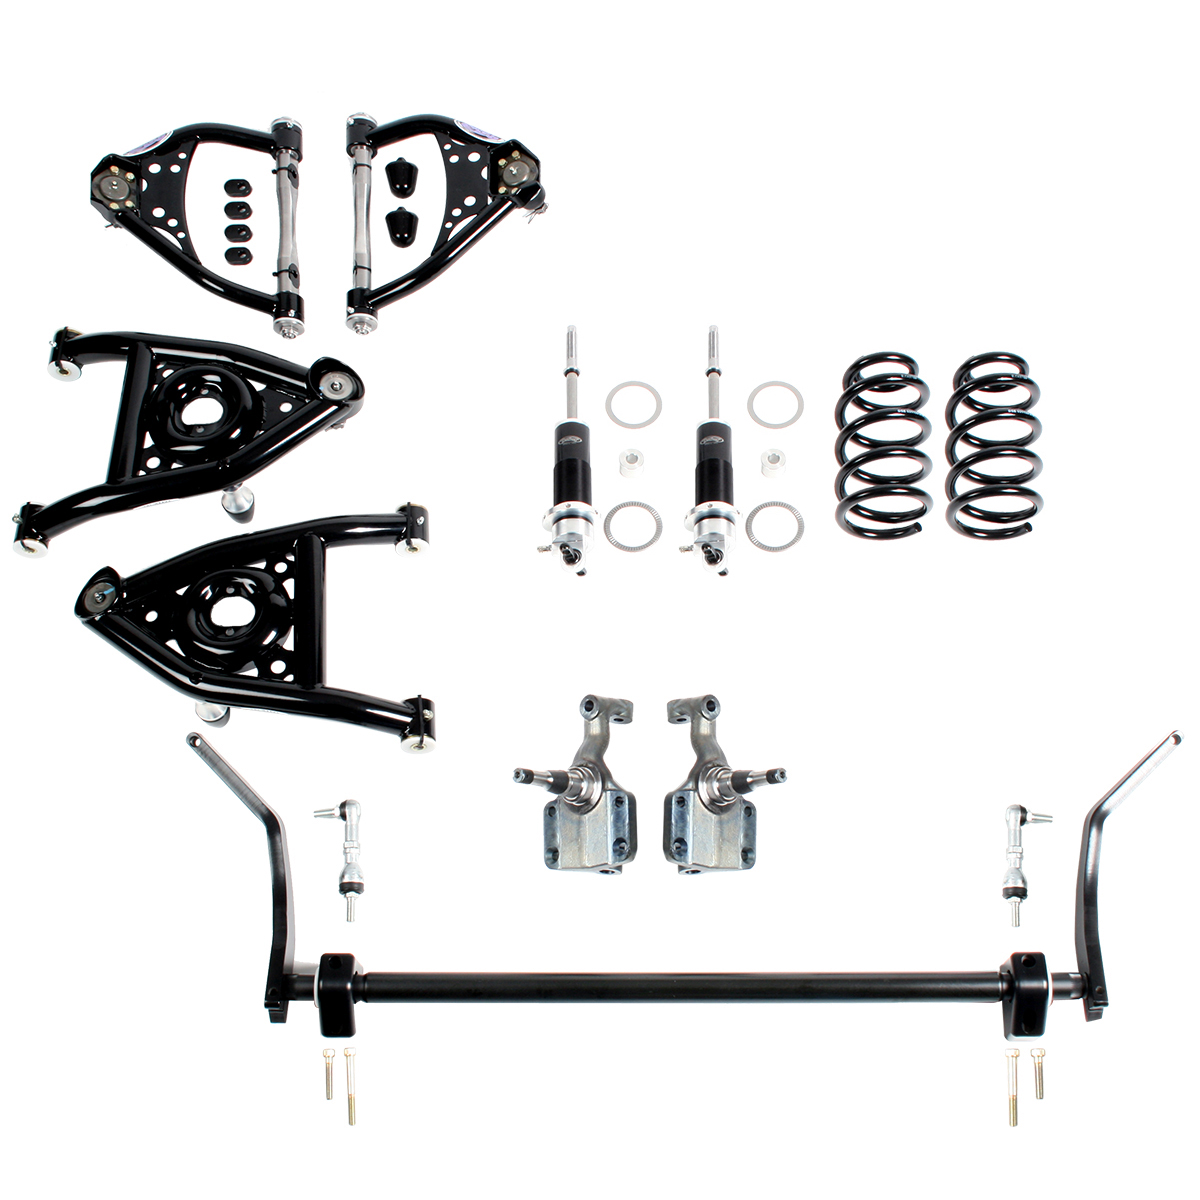 Detroit Speed  Speed Kit 2 Front Suspension Kit with Splined Sway Bar Double Adjustable Shocks 1964-1966 A-Body BBC